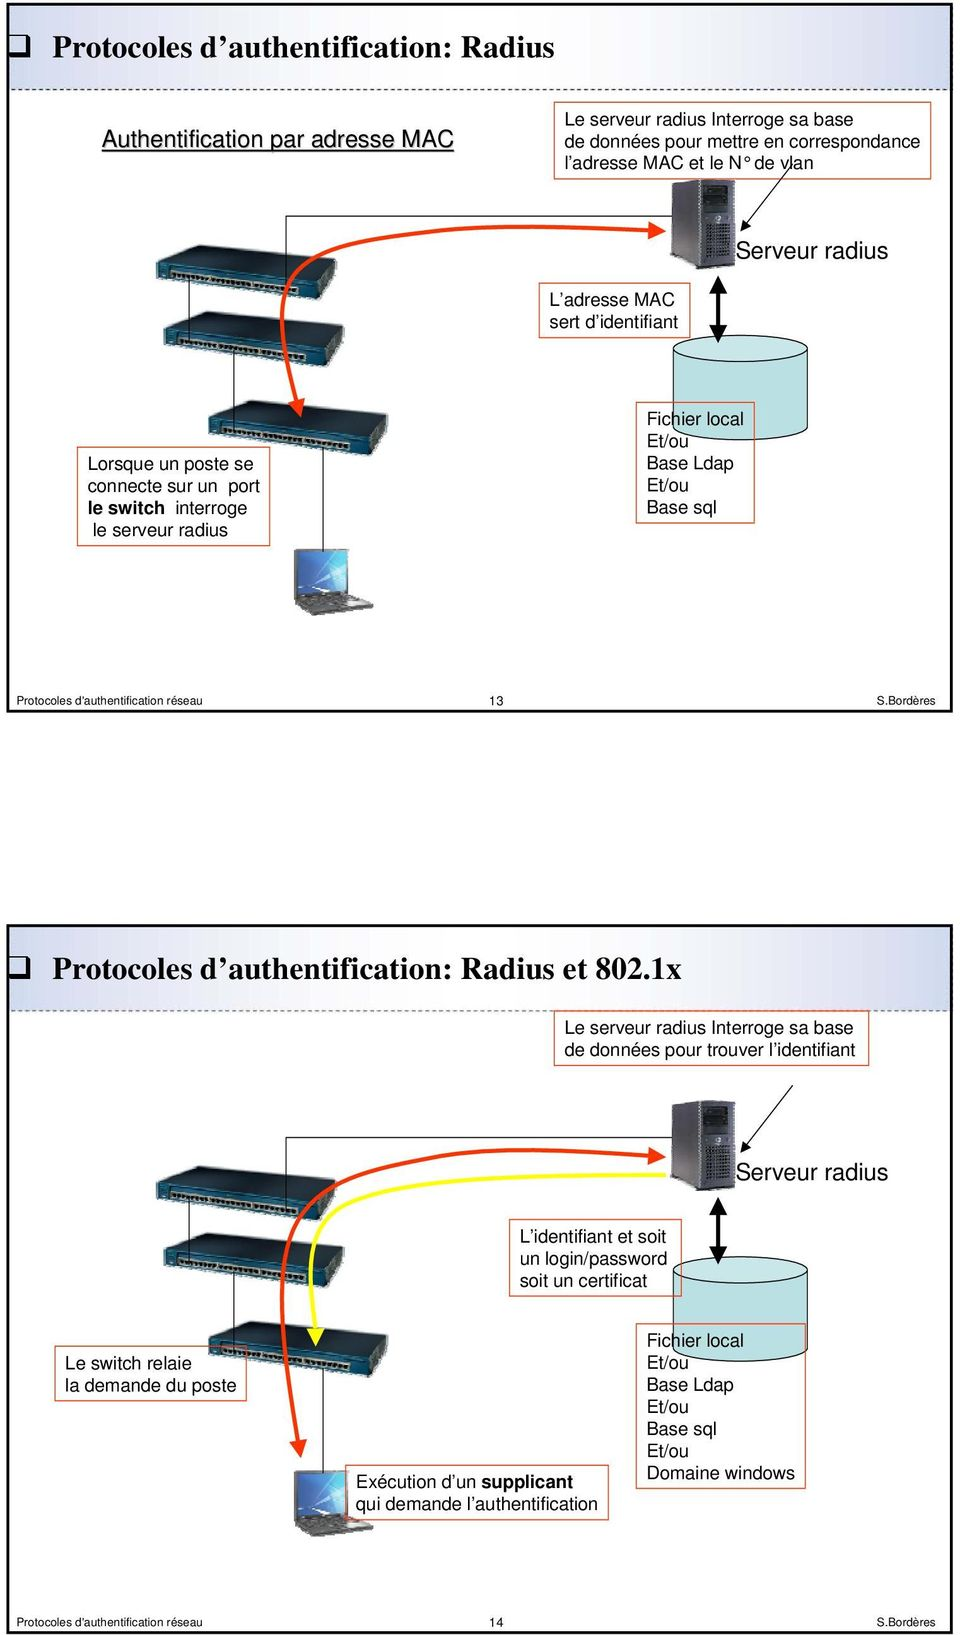 Protocoles d authentification: Radius et 802.